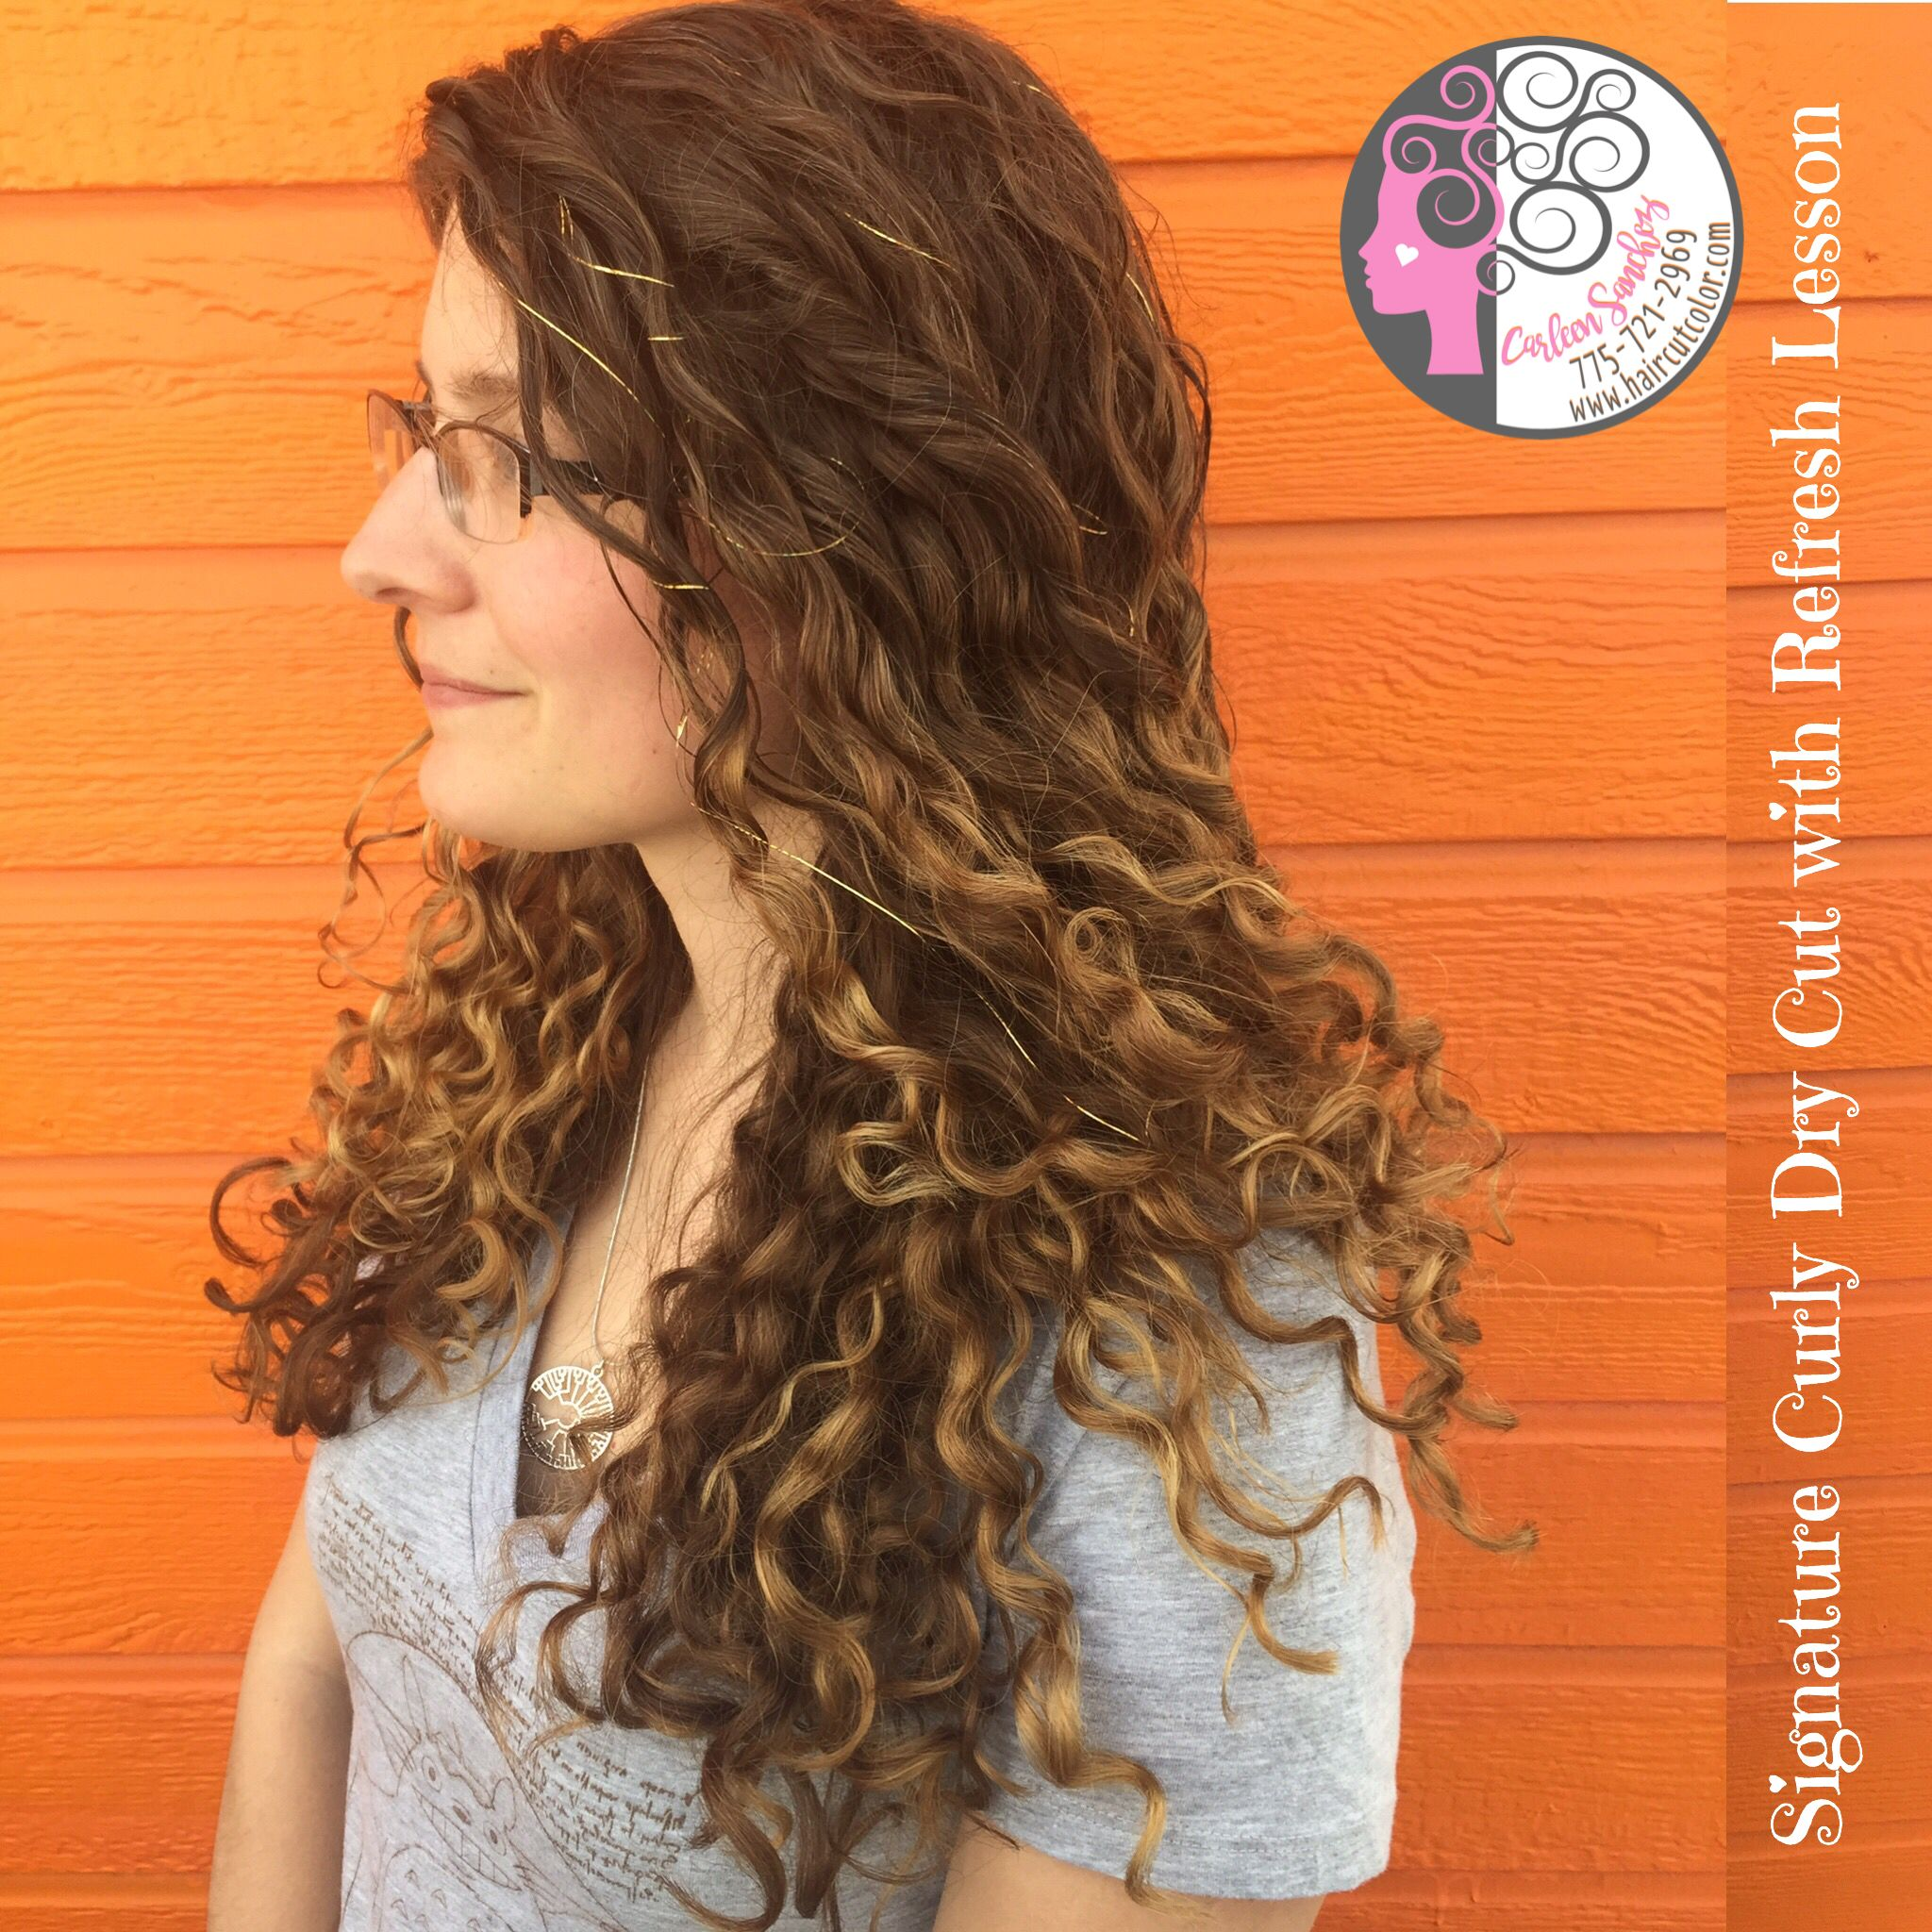 Naturally Curly Grown Out Balayage Highlights Bronde Hair By Carleen Sanchez Nevada S Curl Expert 775 721 Curly Hair Styles Bronde Hair Haircuts For Curly Hair